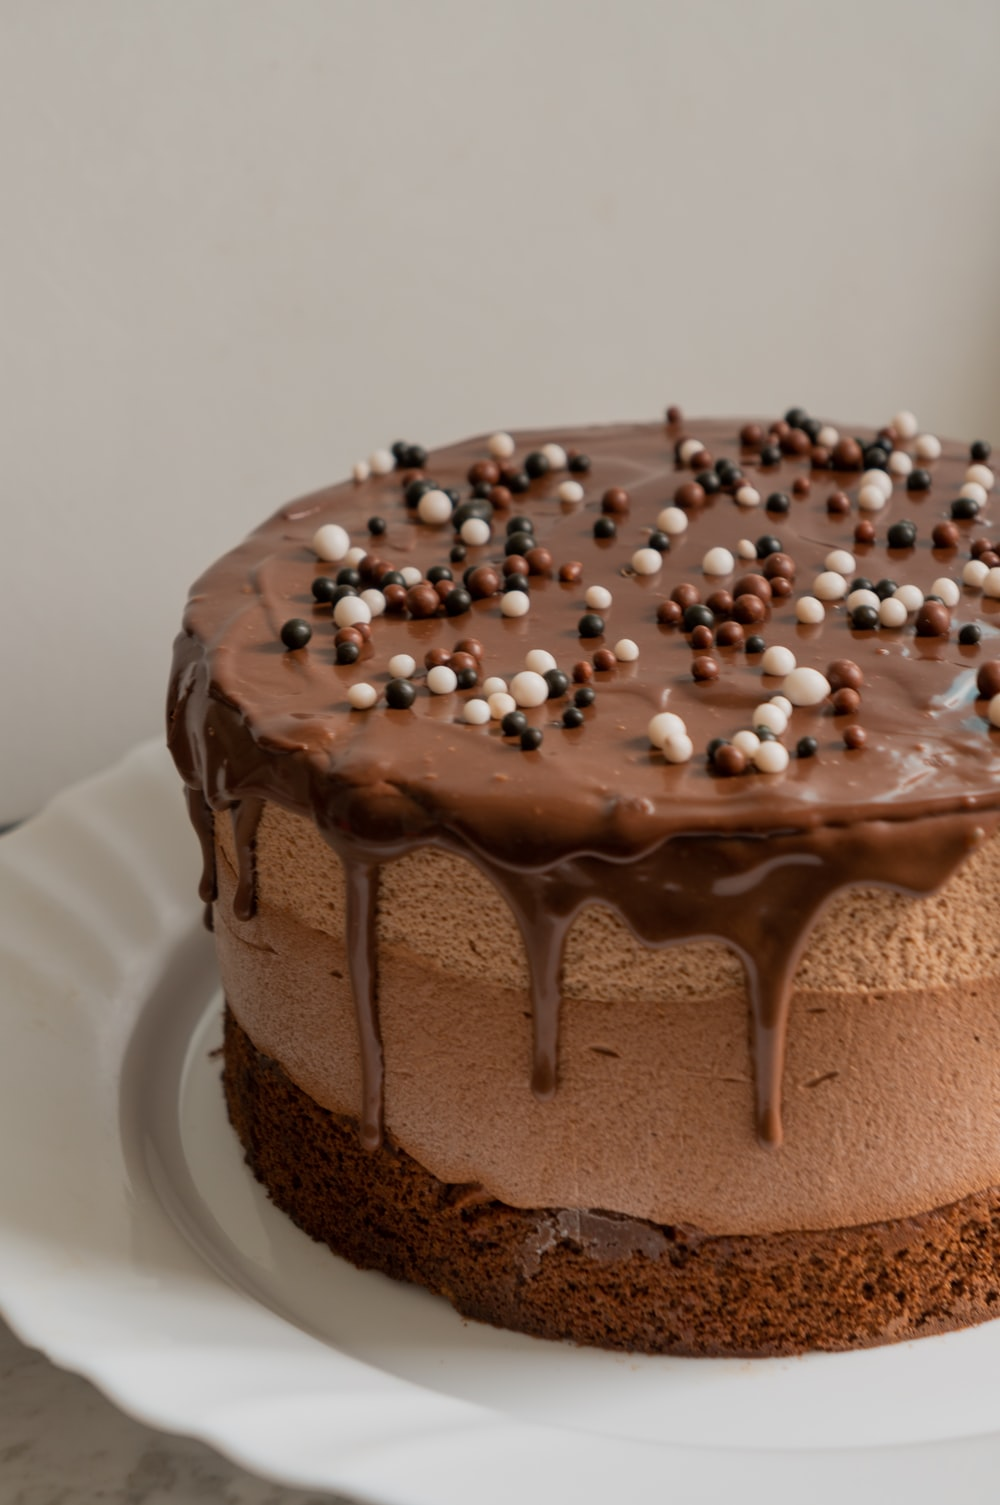 chocolate cake with white icing on white ceramic plate